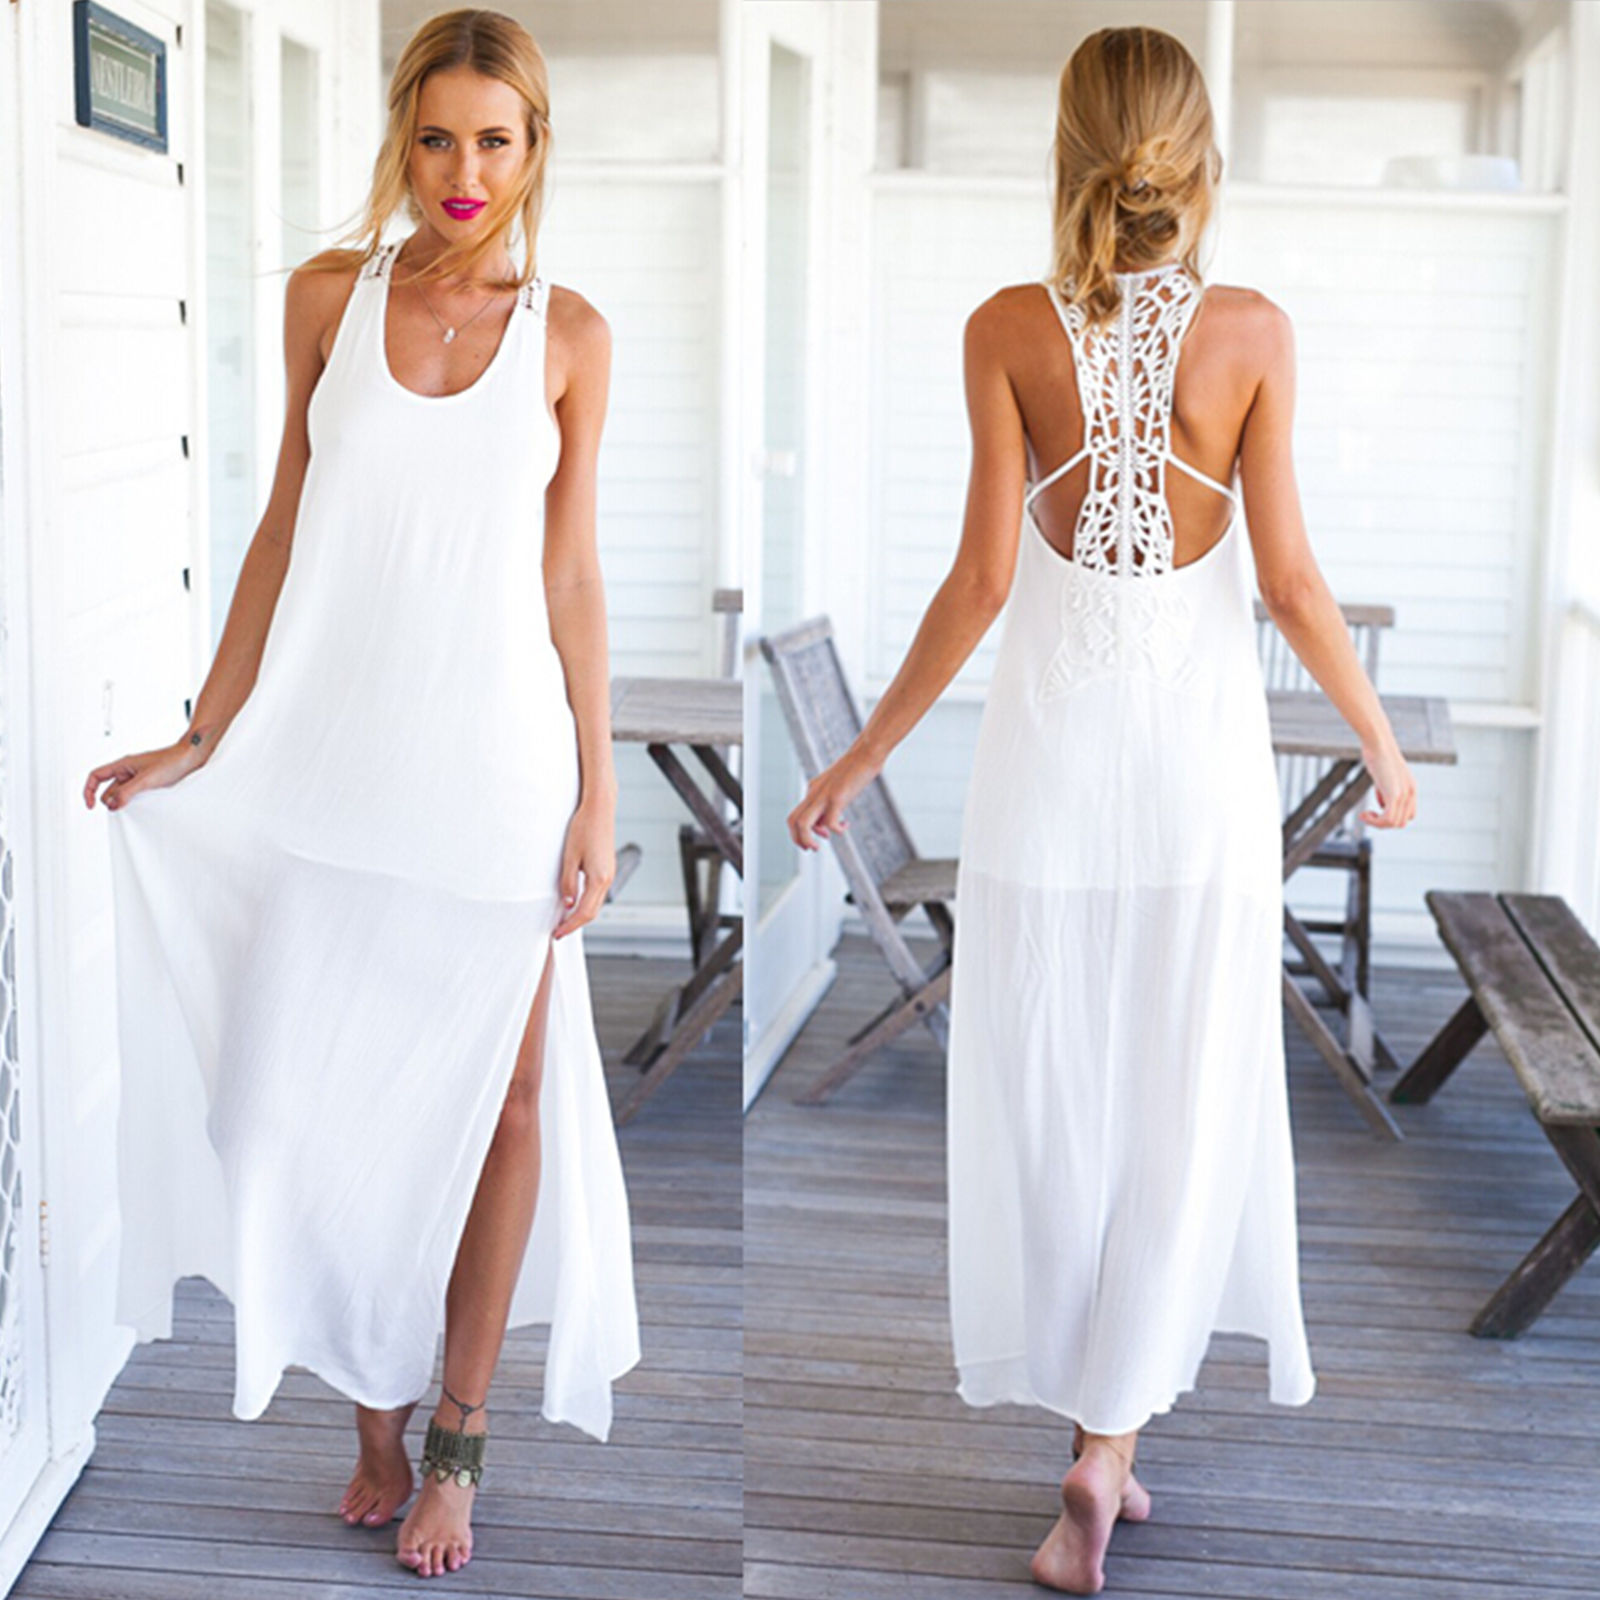 5c522b6cdeb Women Summer Crochet Boho Evening Party Long Maxi Beach Dress Chiffon  Sundress